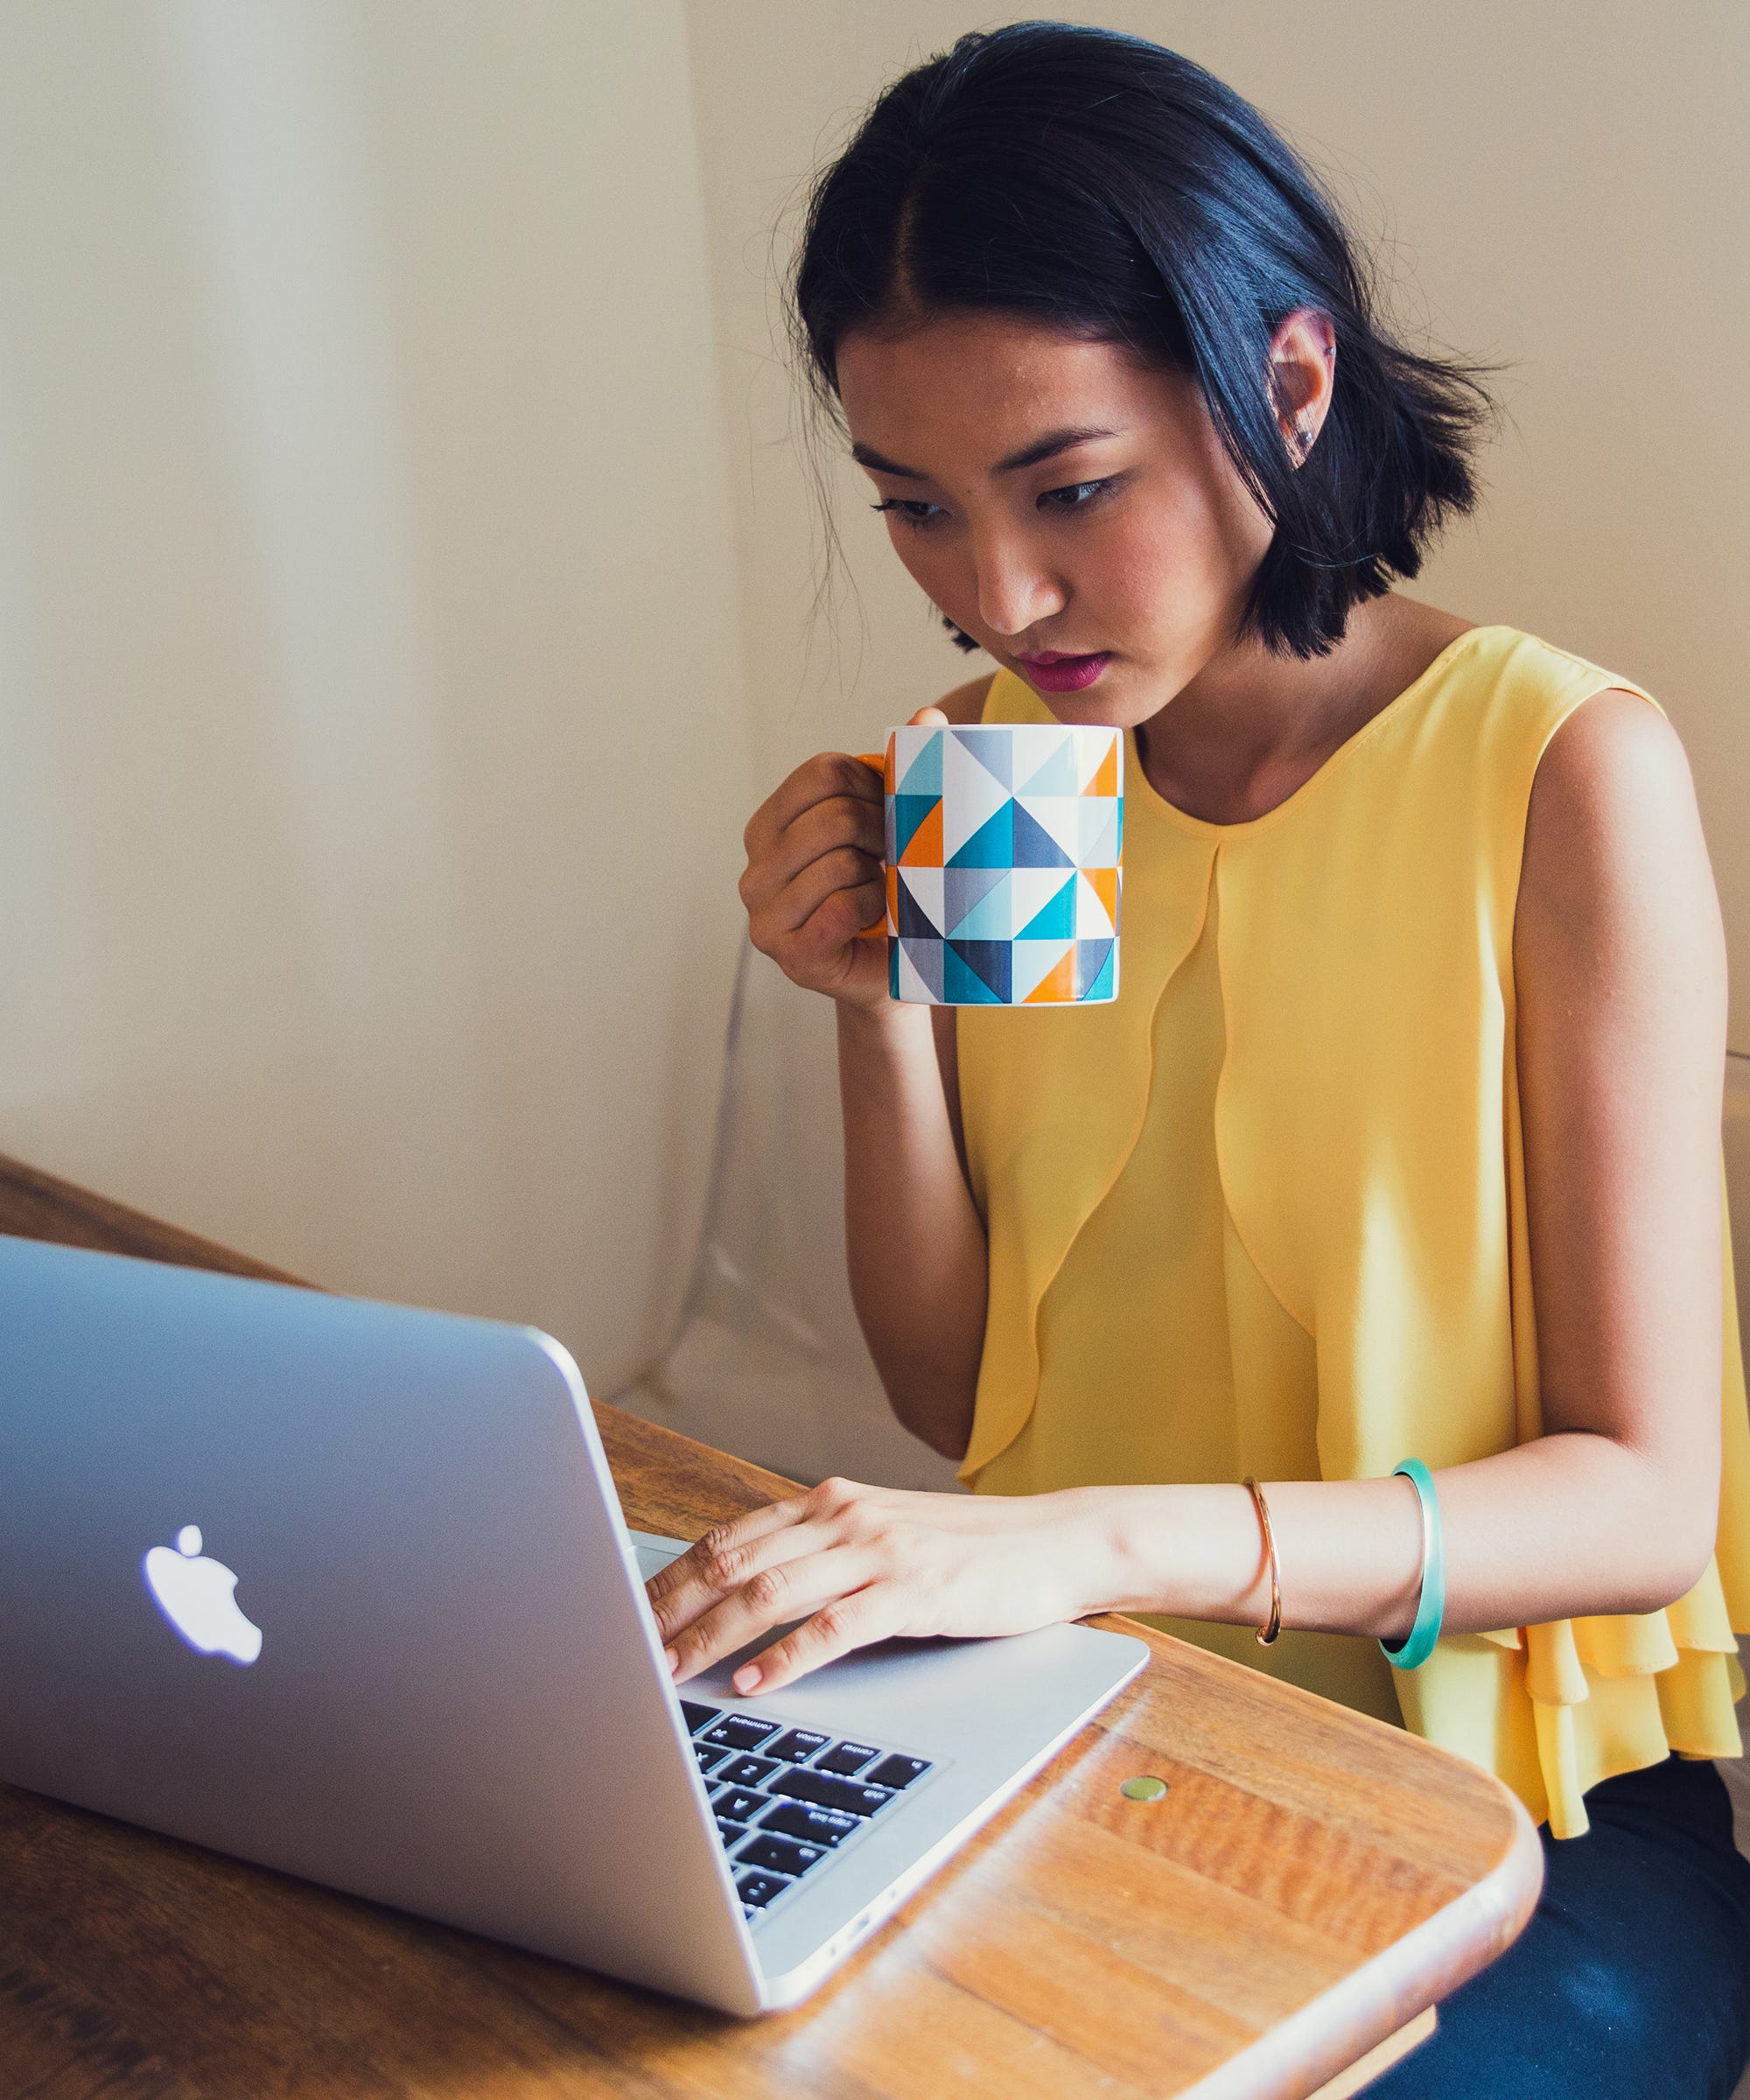 9 Essential Interpersonal Skills To Add Your Résumé